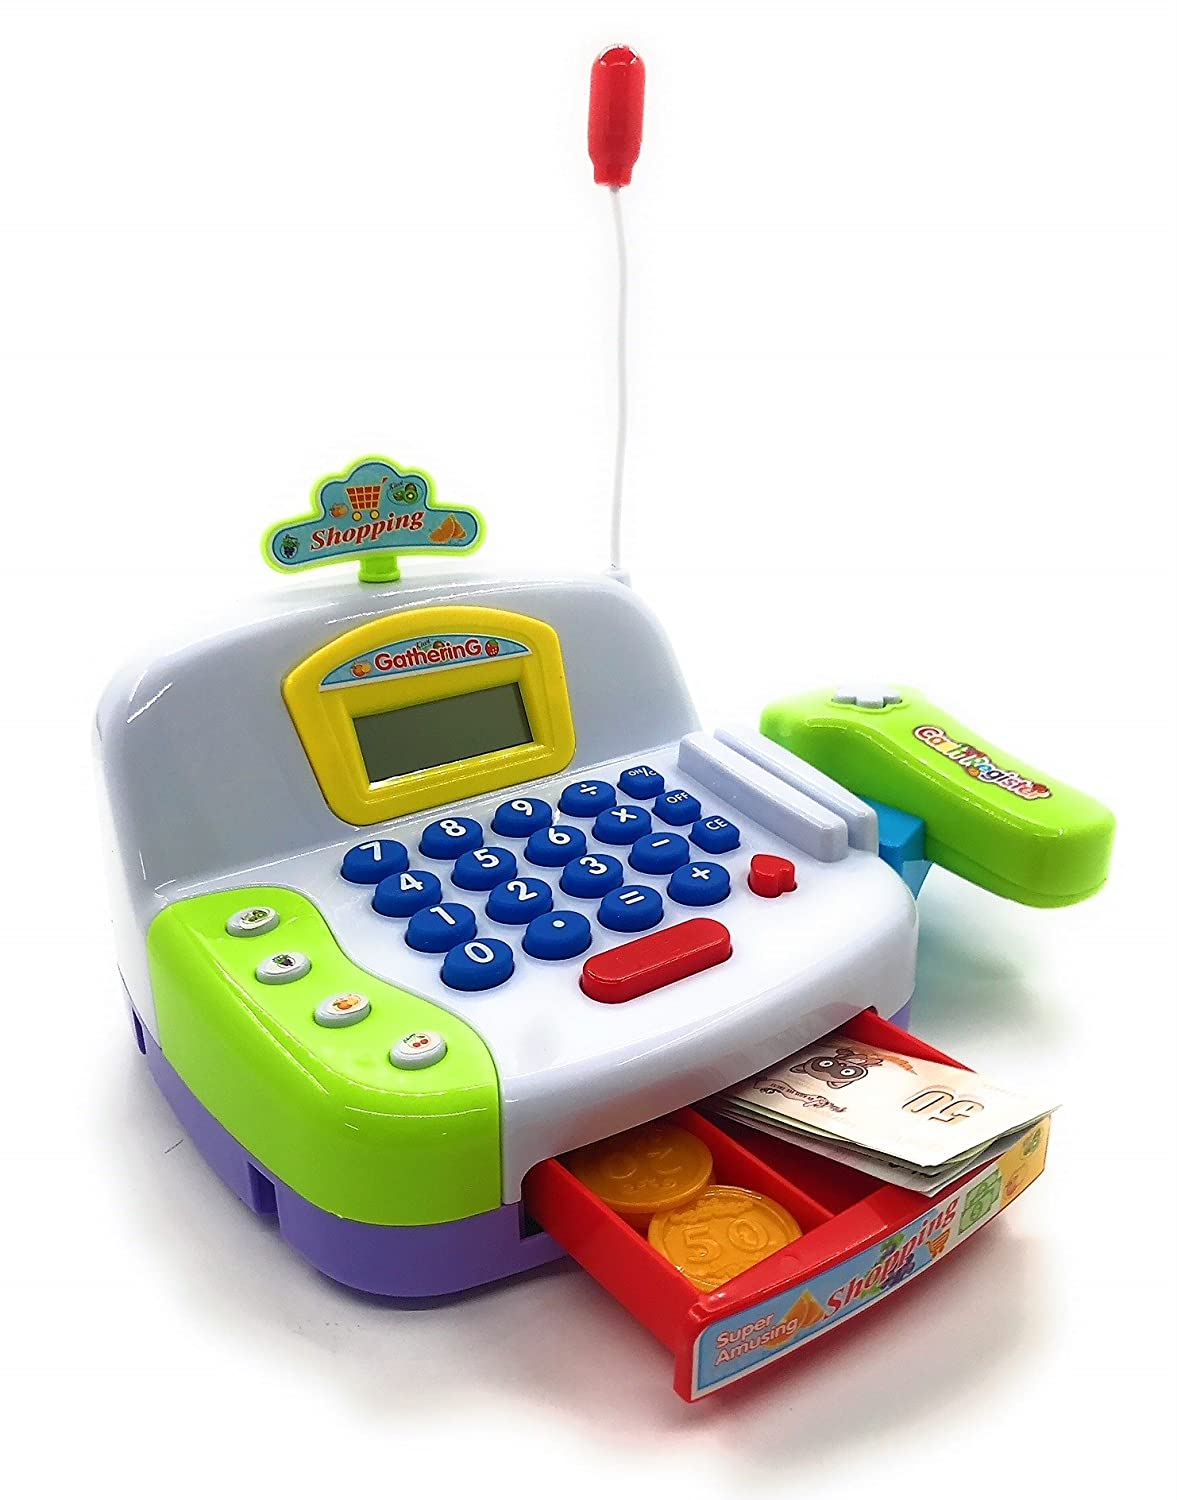 Amazon.com: Toy Cash Register Cashier Playset Battery Operated, Kids Pretend Play Set,Colorful Childrens Cash Register w/Microphone, Scanner, Calculator, ...